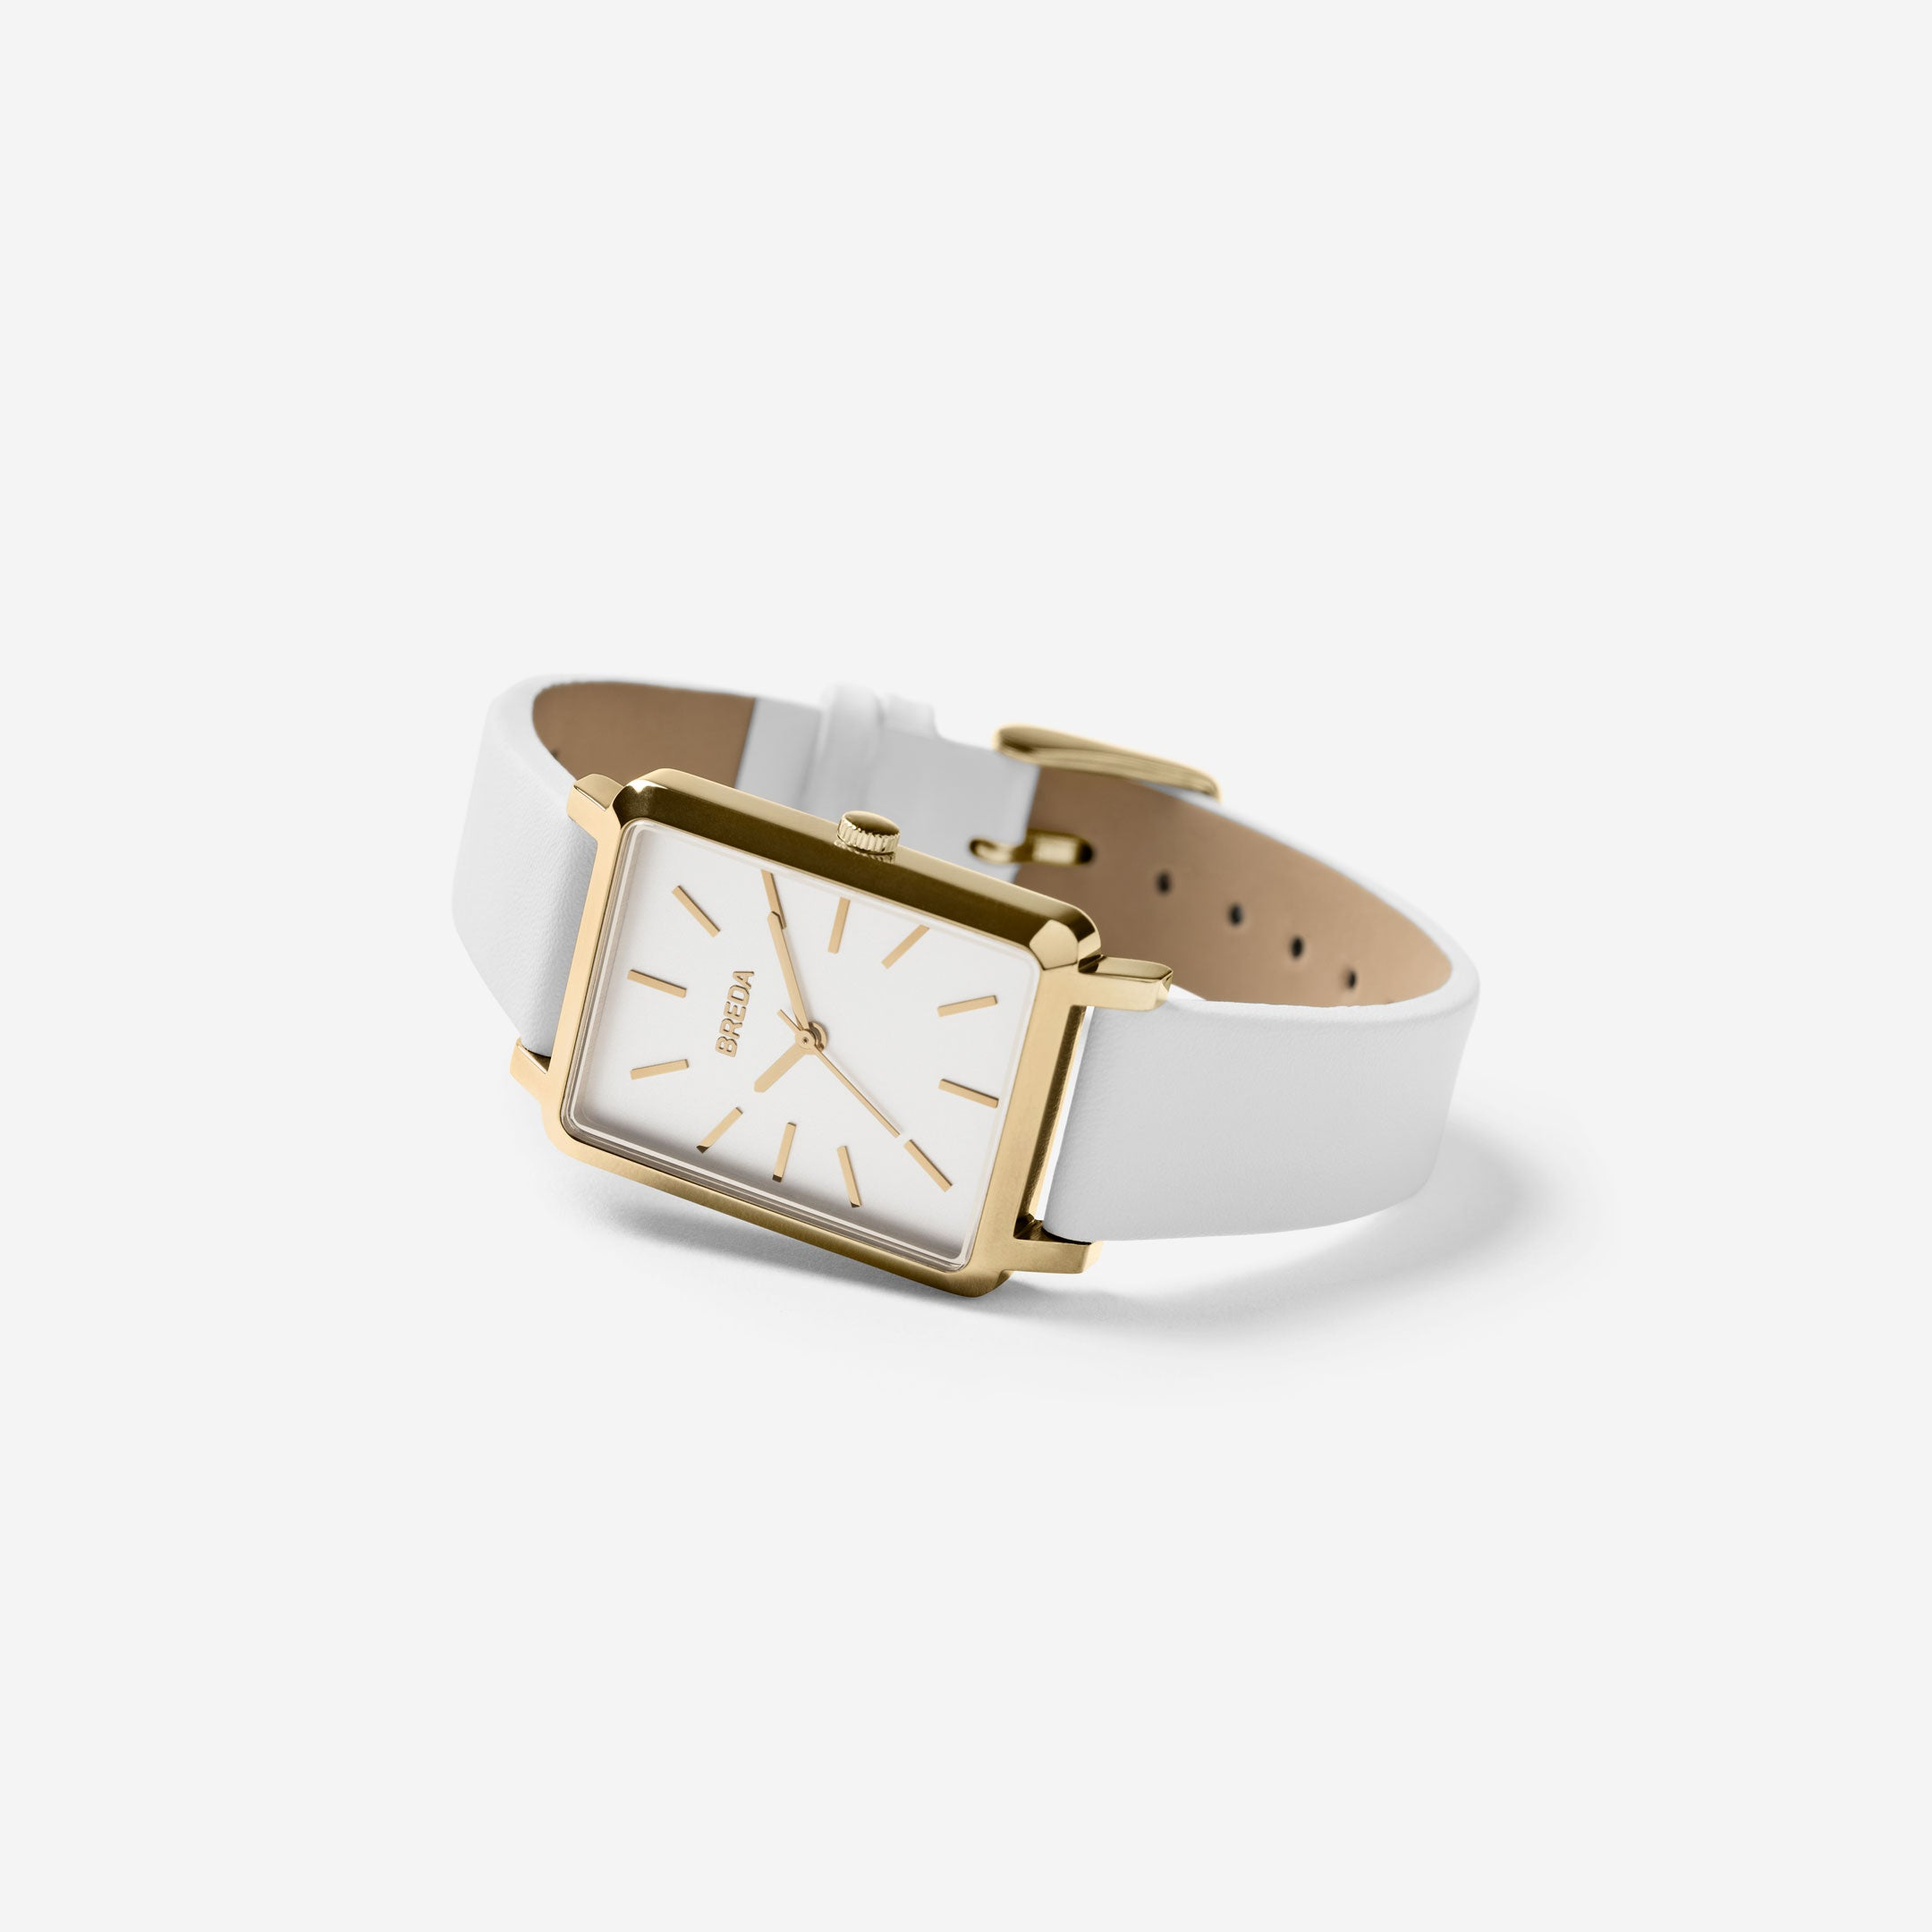 //cdn.shopify.com/s/files/1/0879/6650/products/breda-baer-1729b-gold-white-leather-watch-angle_1024x1024.jpg?v=1522789321